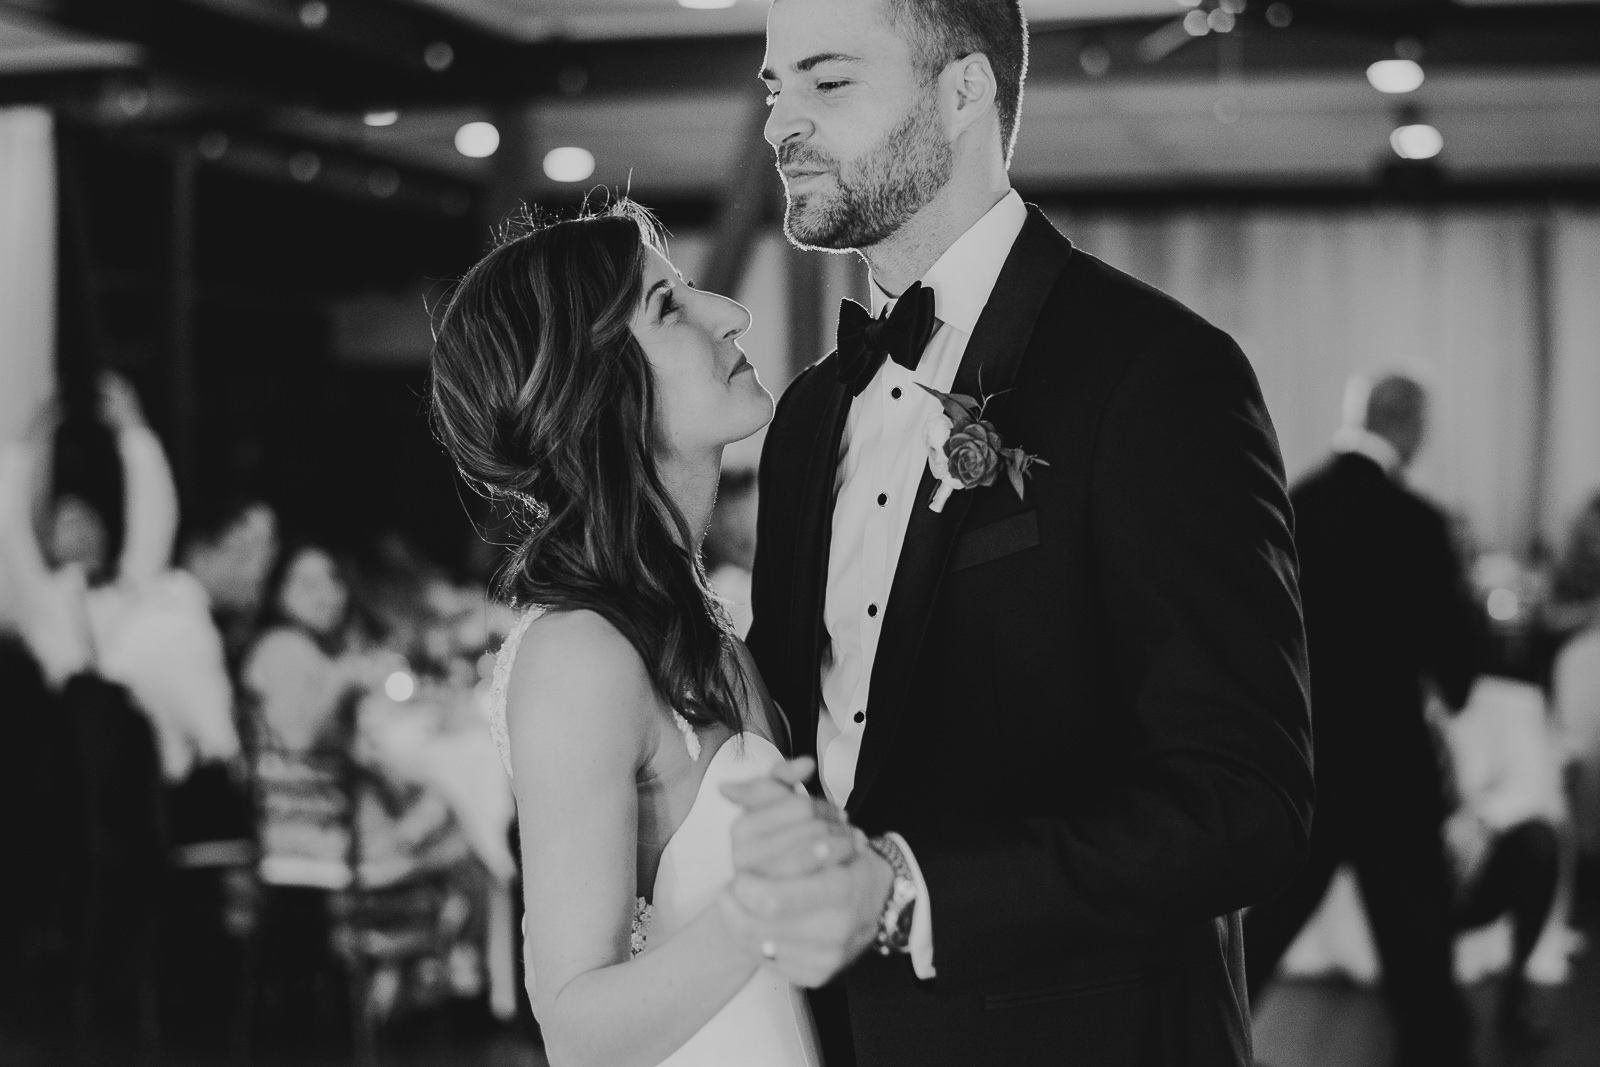 54 club of hillbrook bride and groom first dance - Club of Hillbrook Wedding // Jenna + Ben